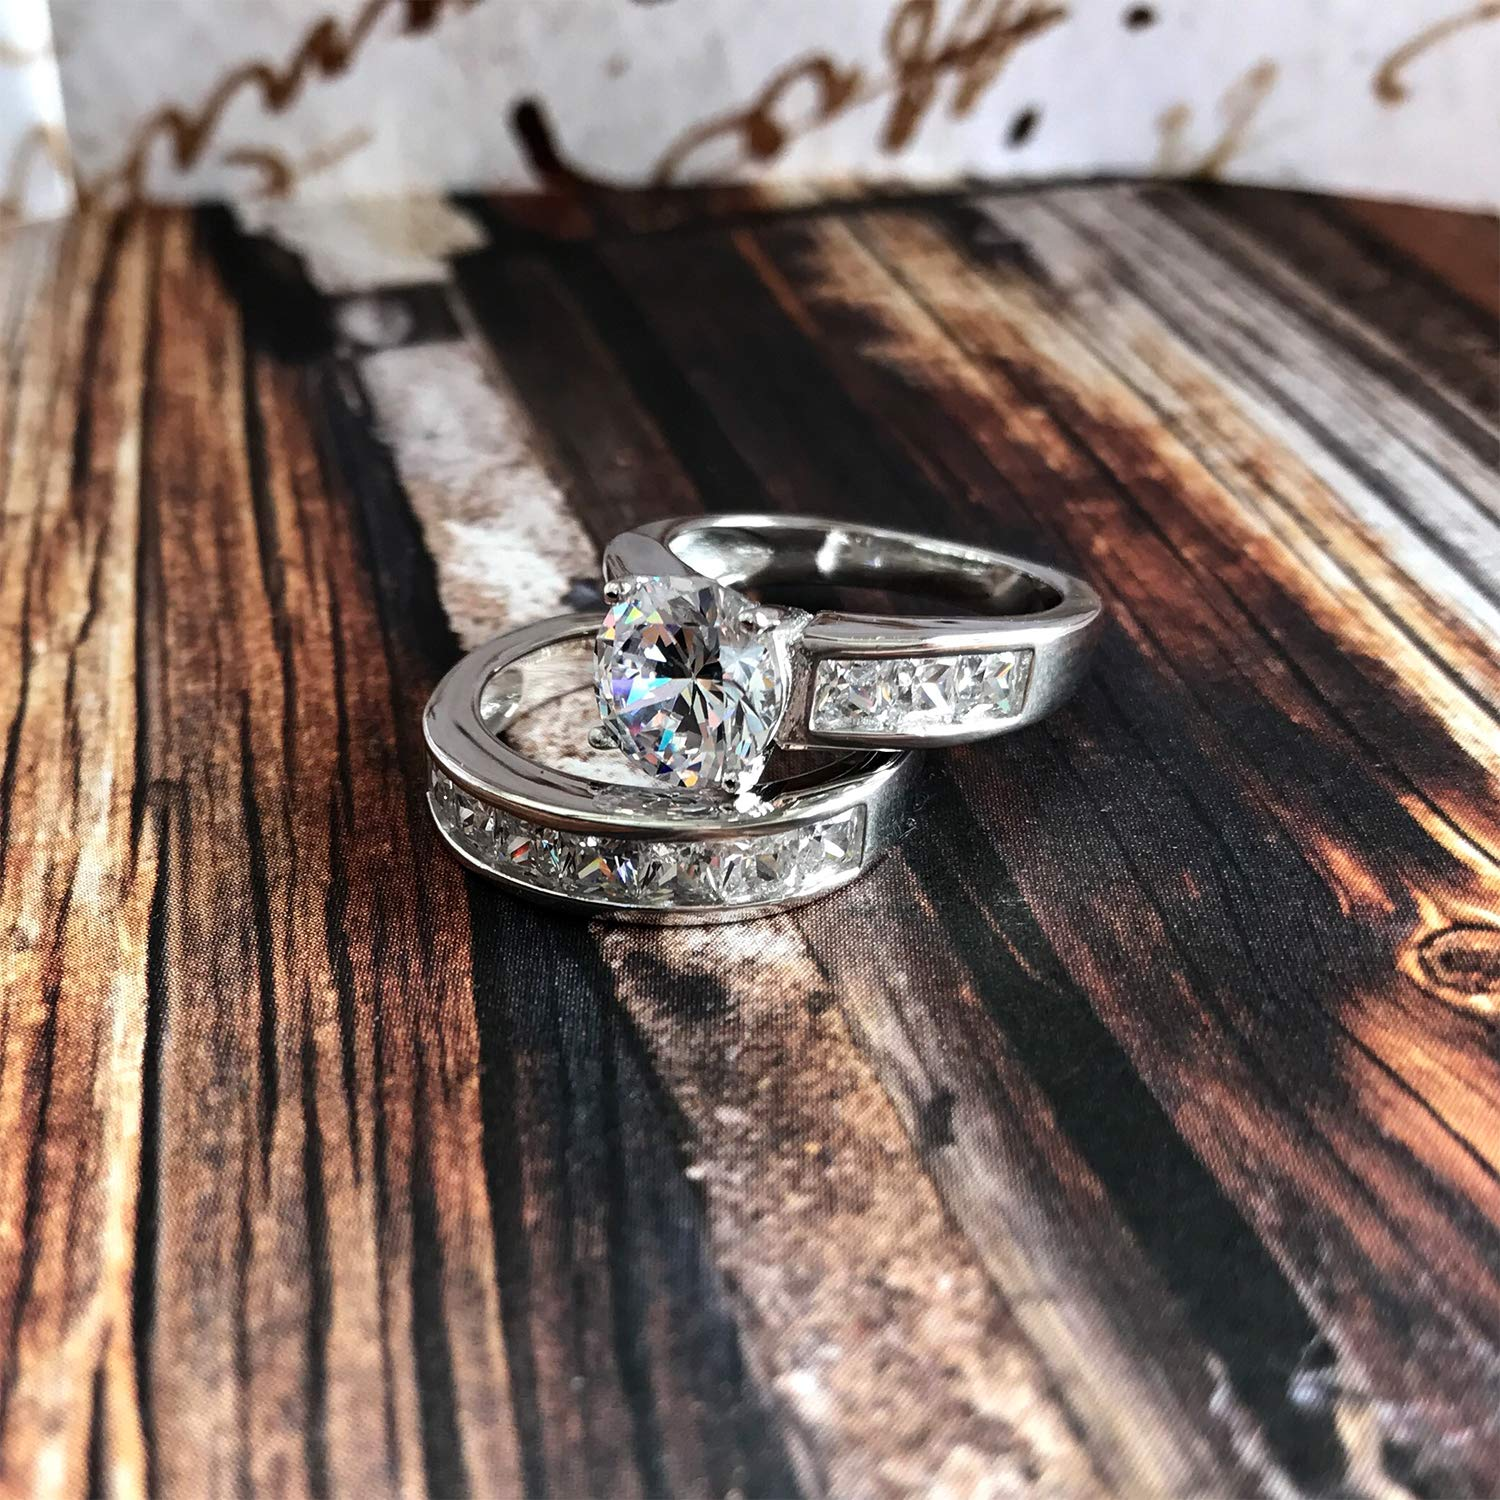 Sterling Silver Bridal Set Engagement Wedding Ring Bands with Round and Princess Cut Cubic Zirconia 7 by Bonndorf (Image #6)